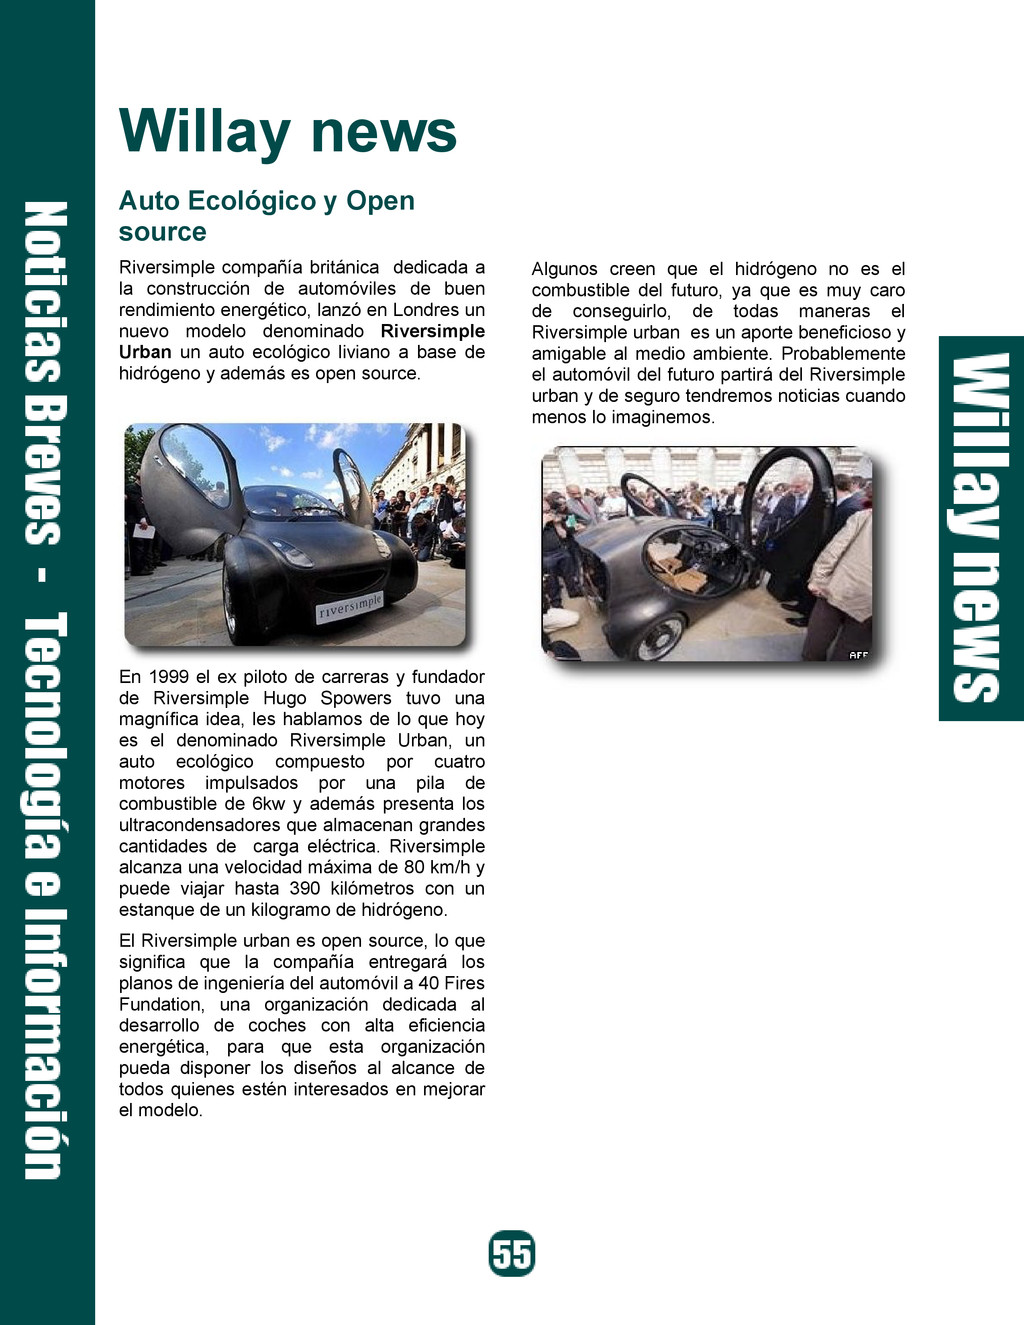 Willay news Auto Ecológico y Open source Rivers...